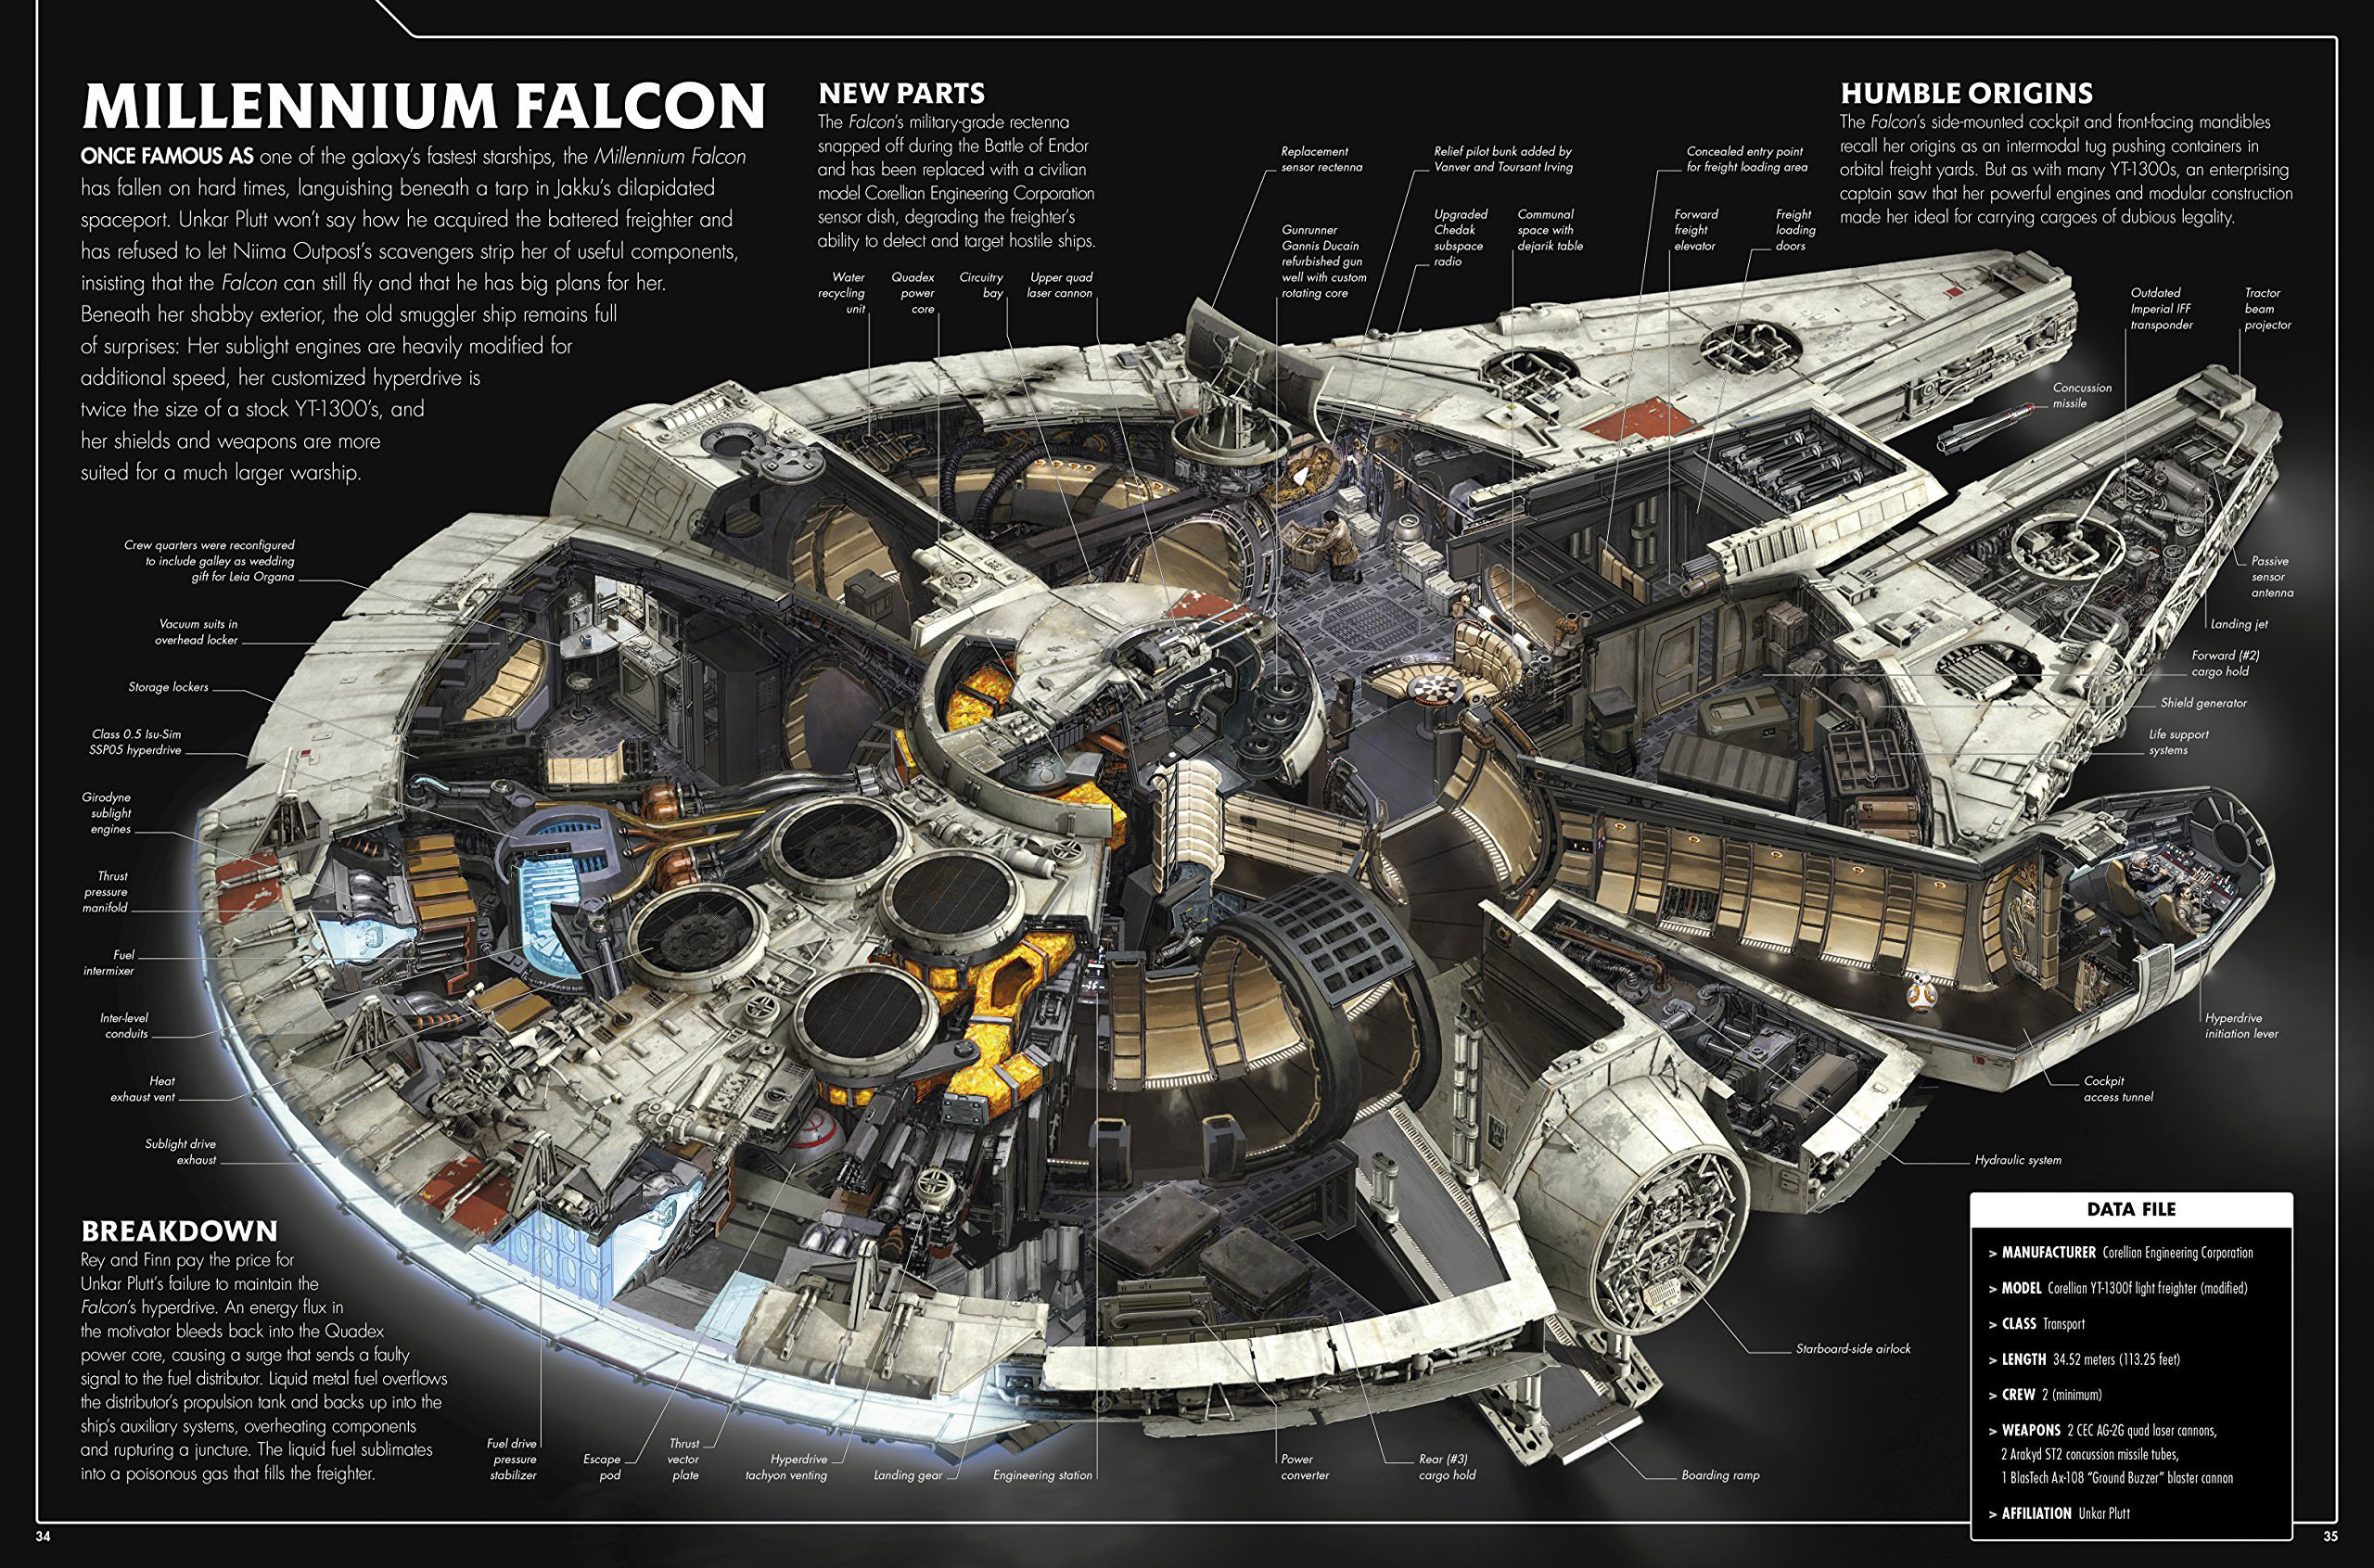 Millennium Falcon Star Wars: The Force Awakens Incredible Cross-Sections by  Jason Fry